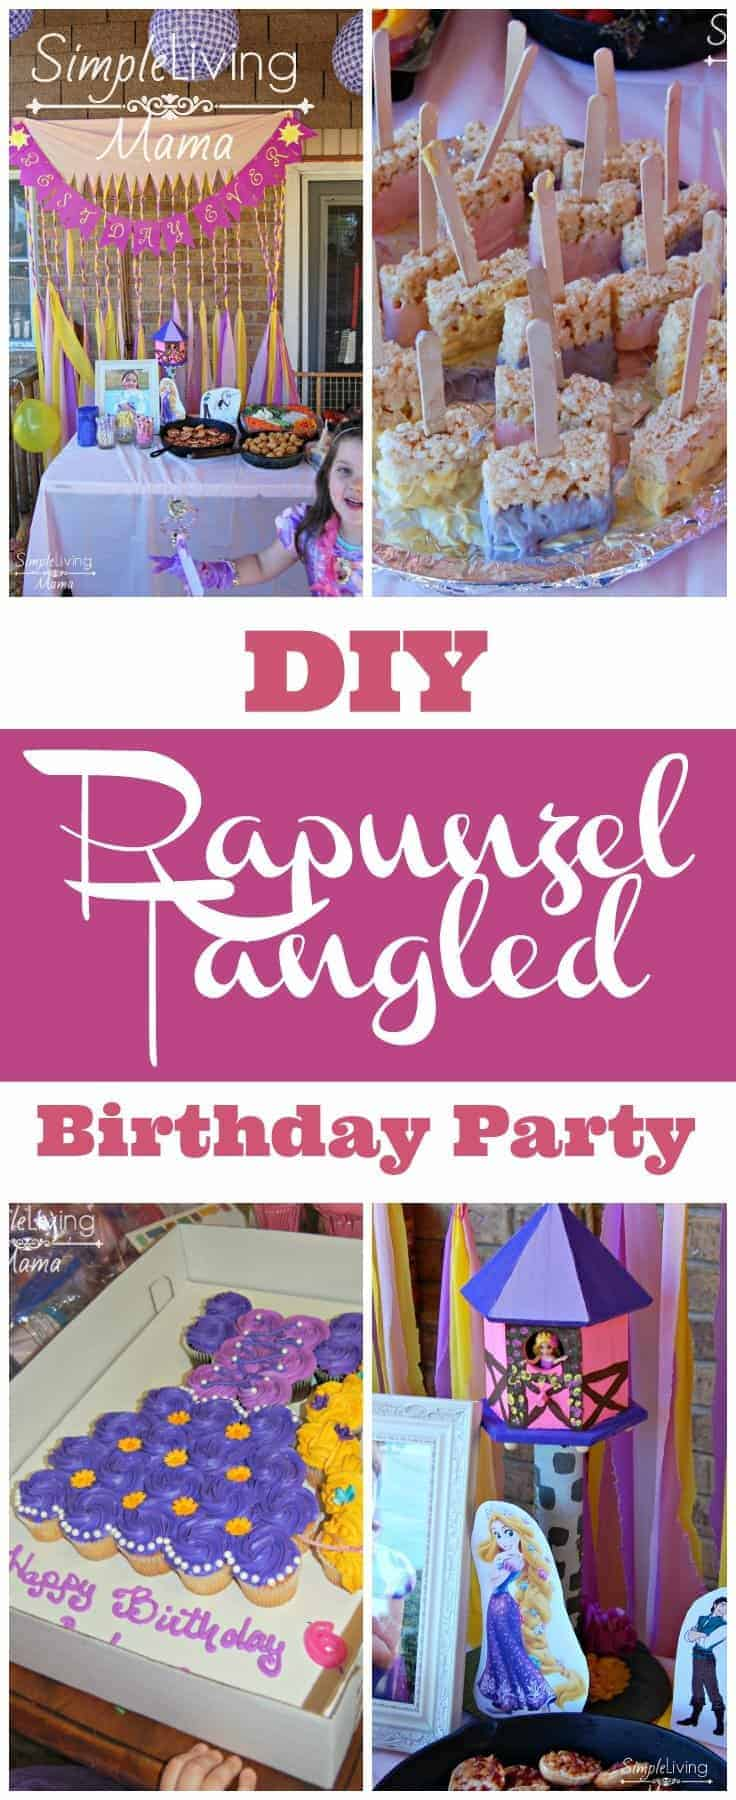 diy-rapunzel-tangled-birthday-party